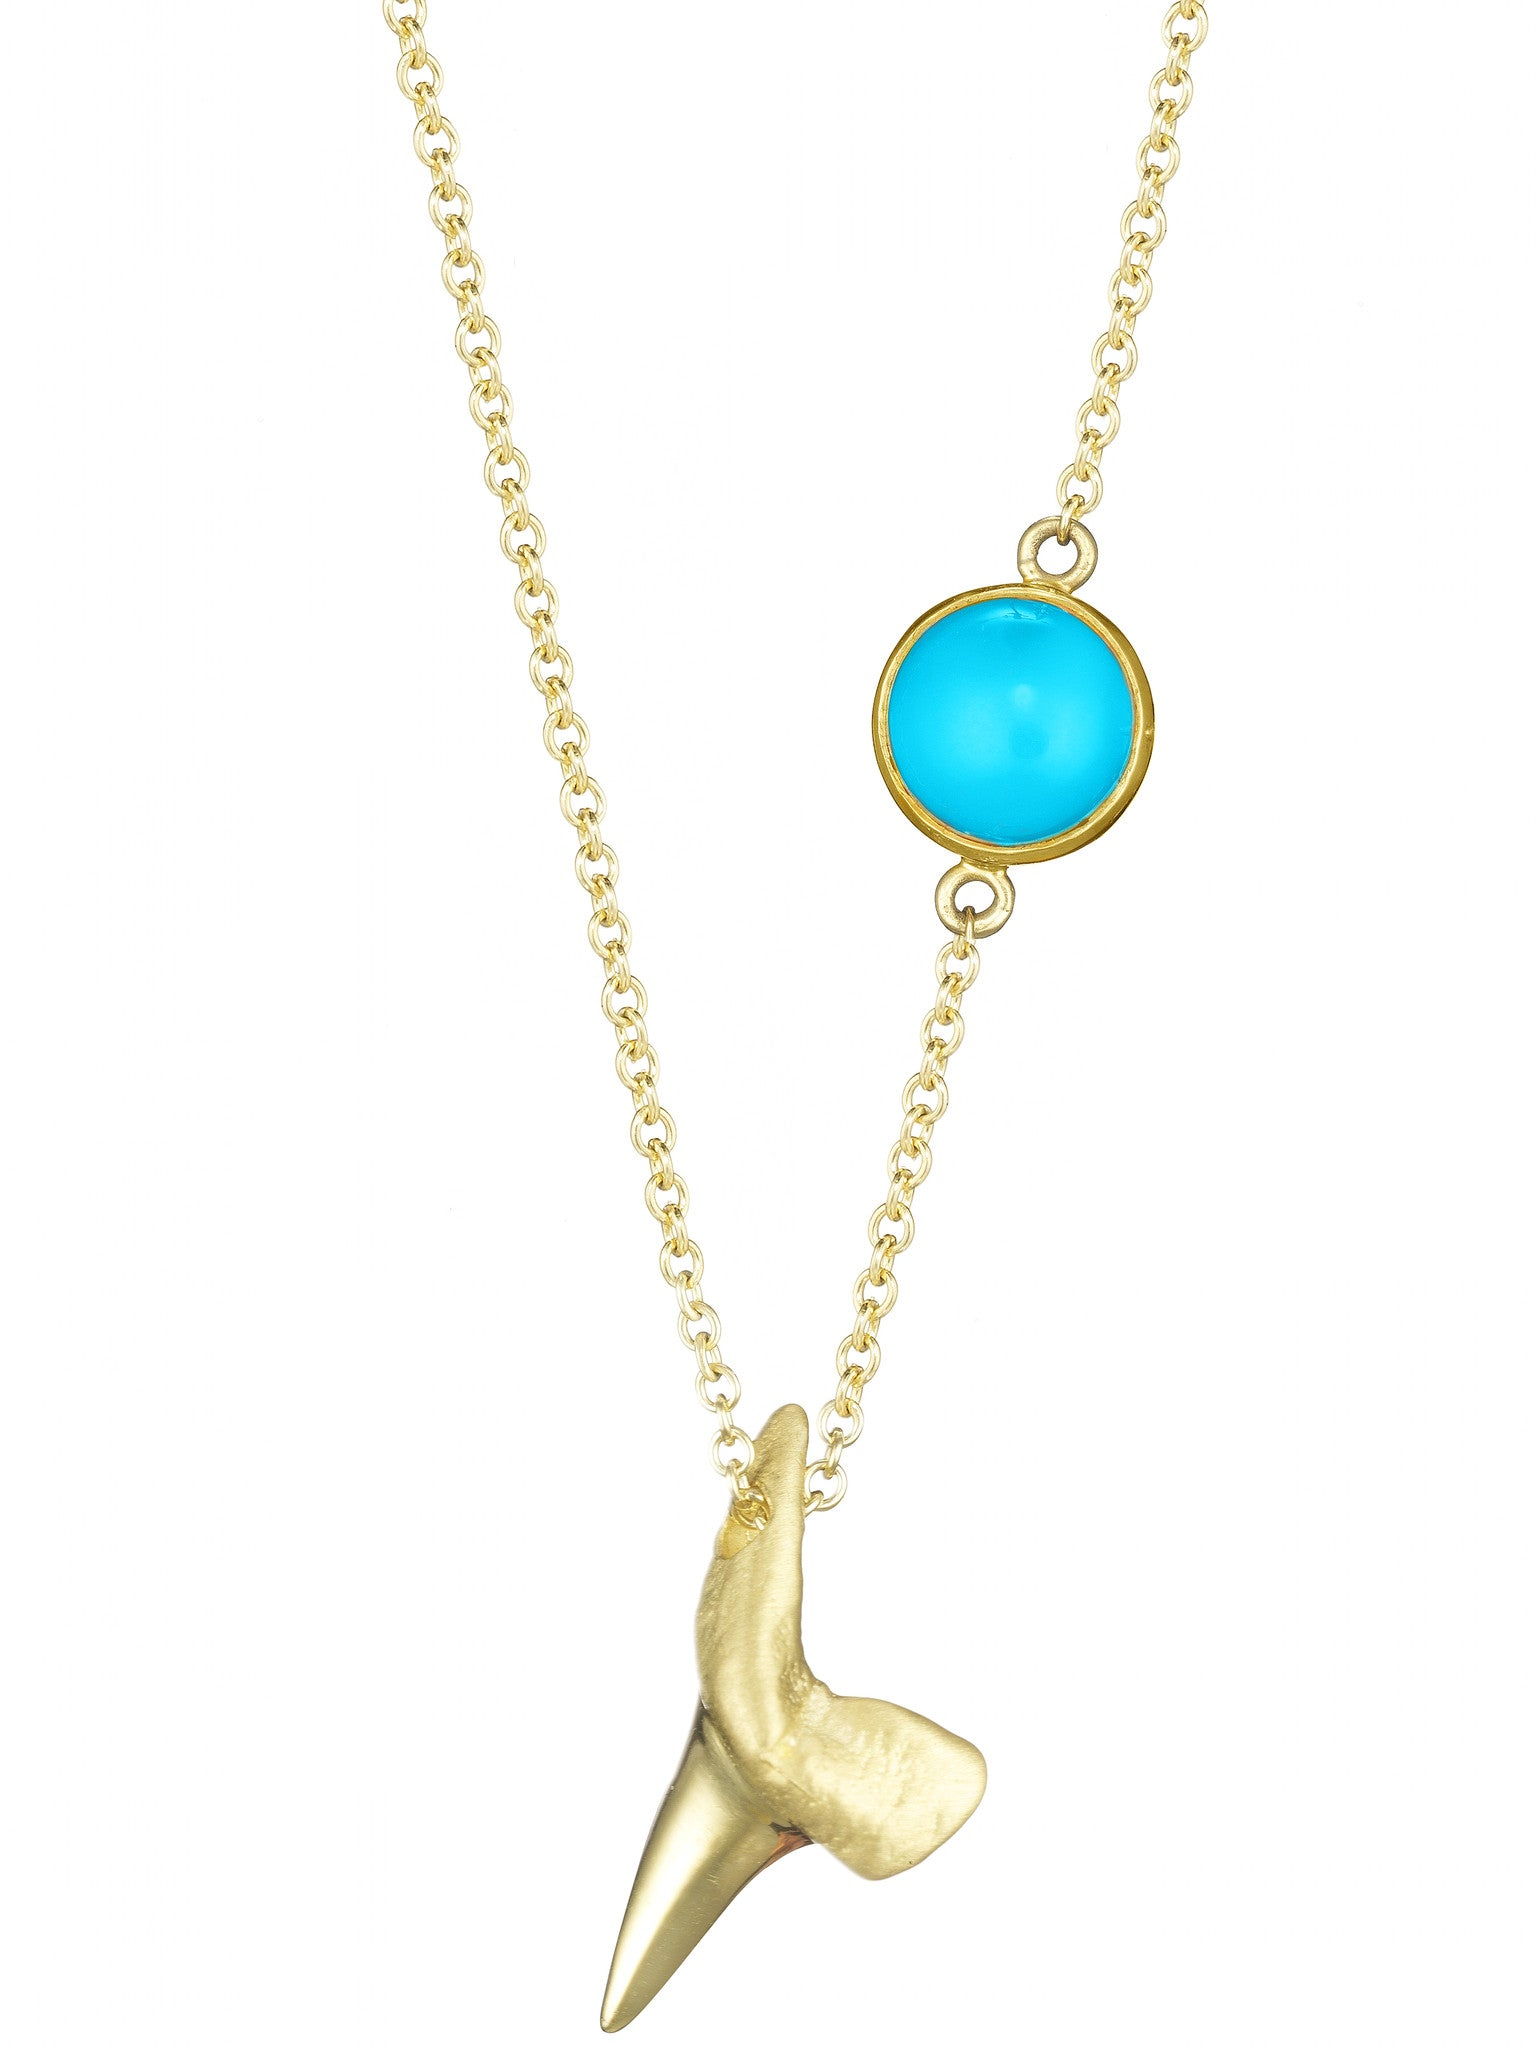 Baby Mako Tooth Necklace with Turquoise Cabochon - Finn